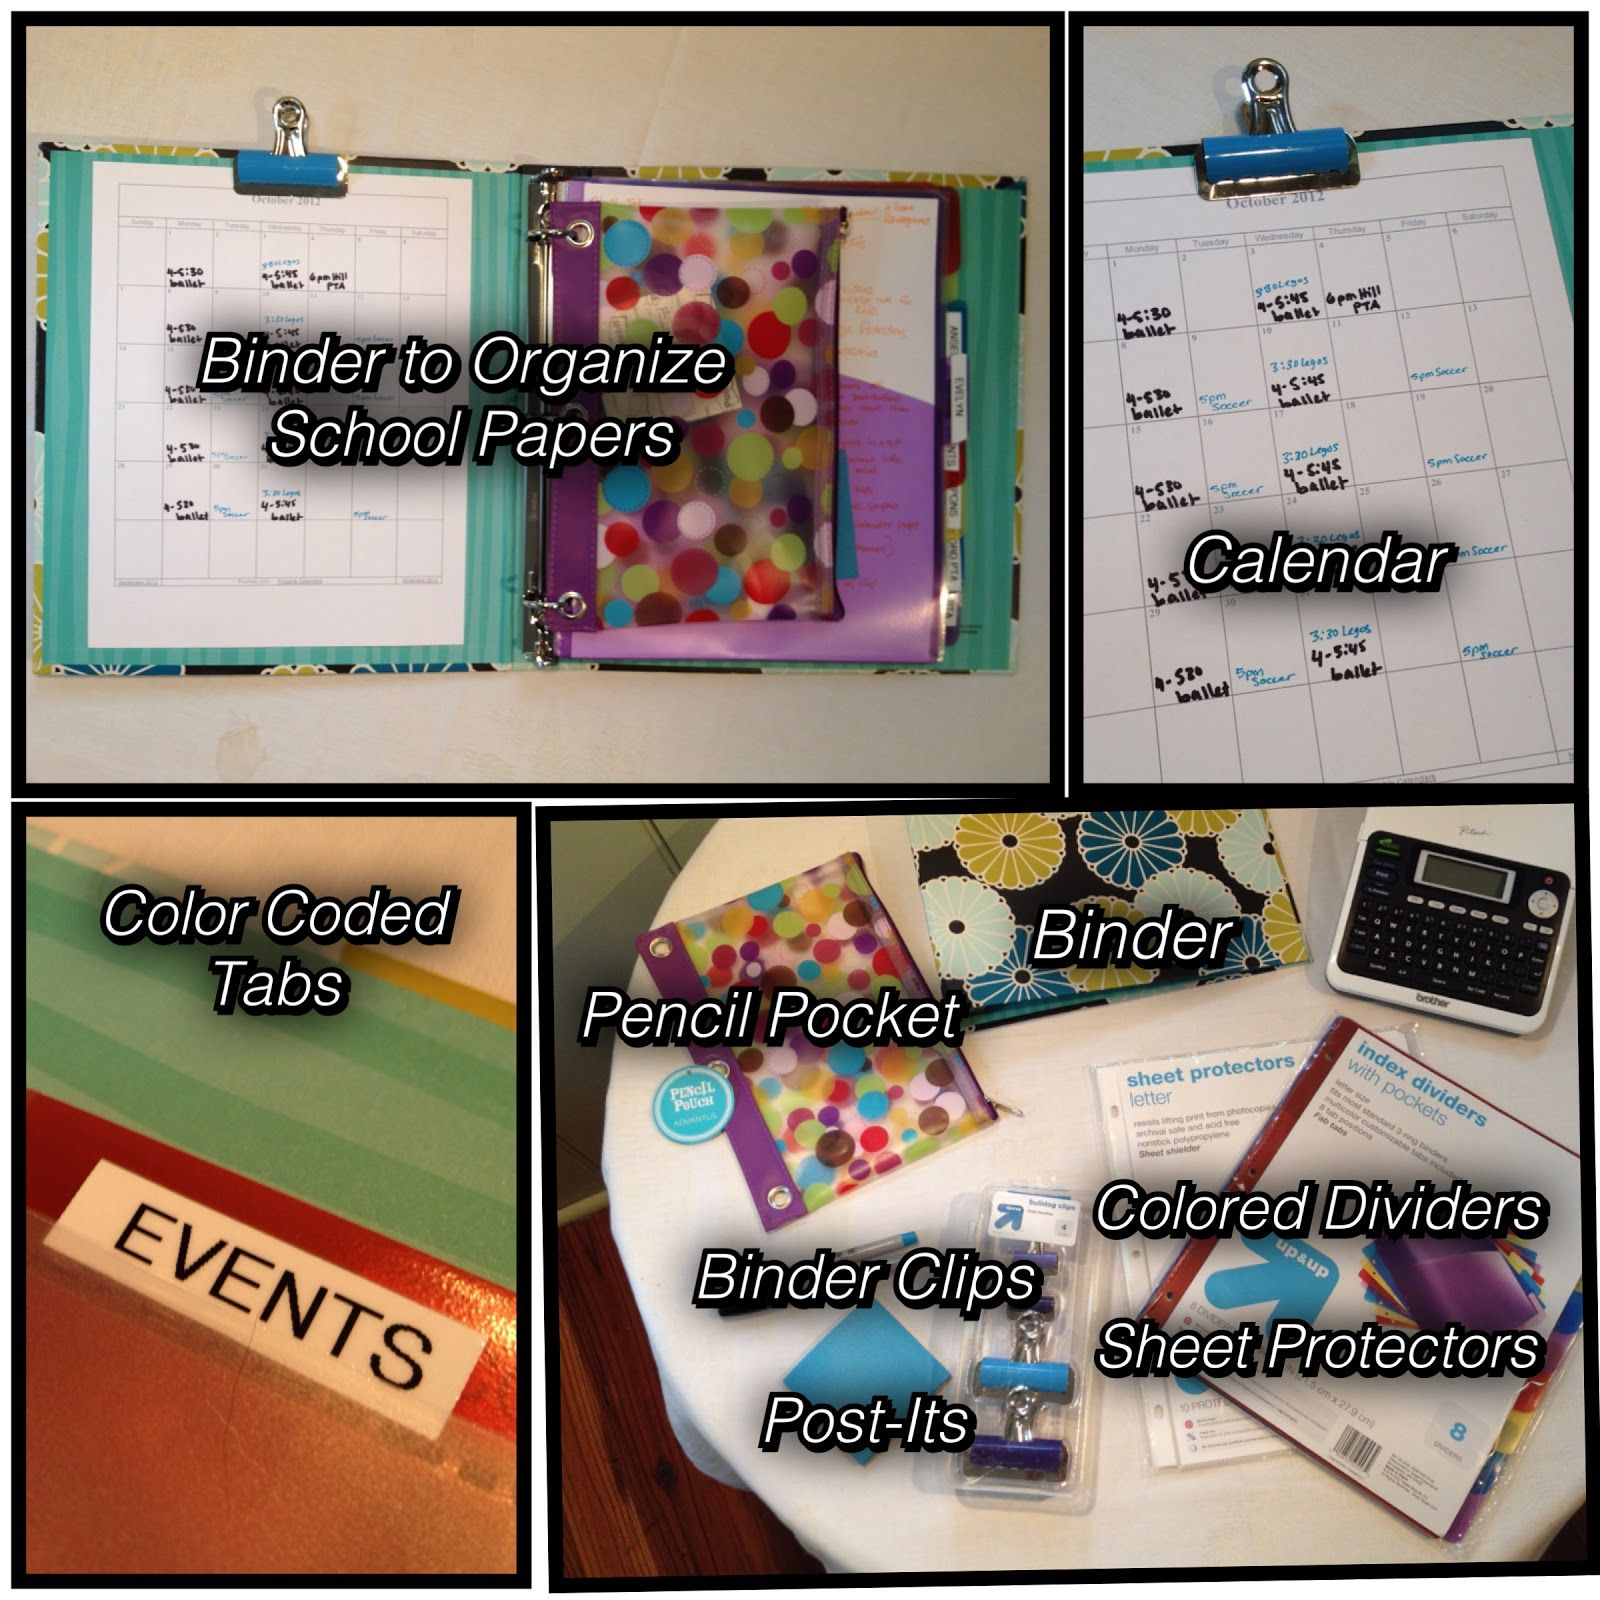 Step-By-Step Guide for Organizing School Papers - Video and Blog - Complete with Supply List - Only $15.59!